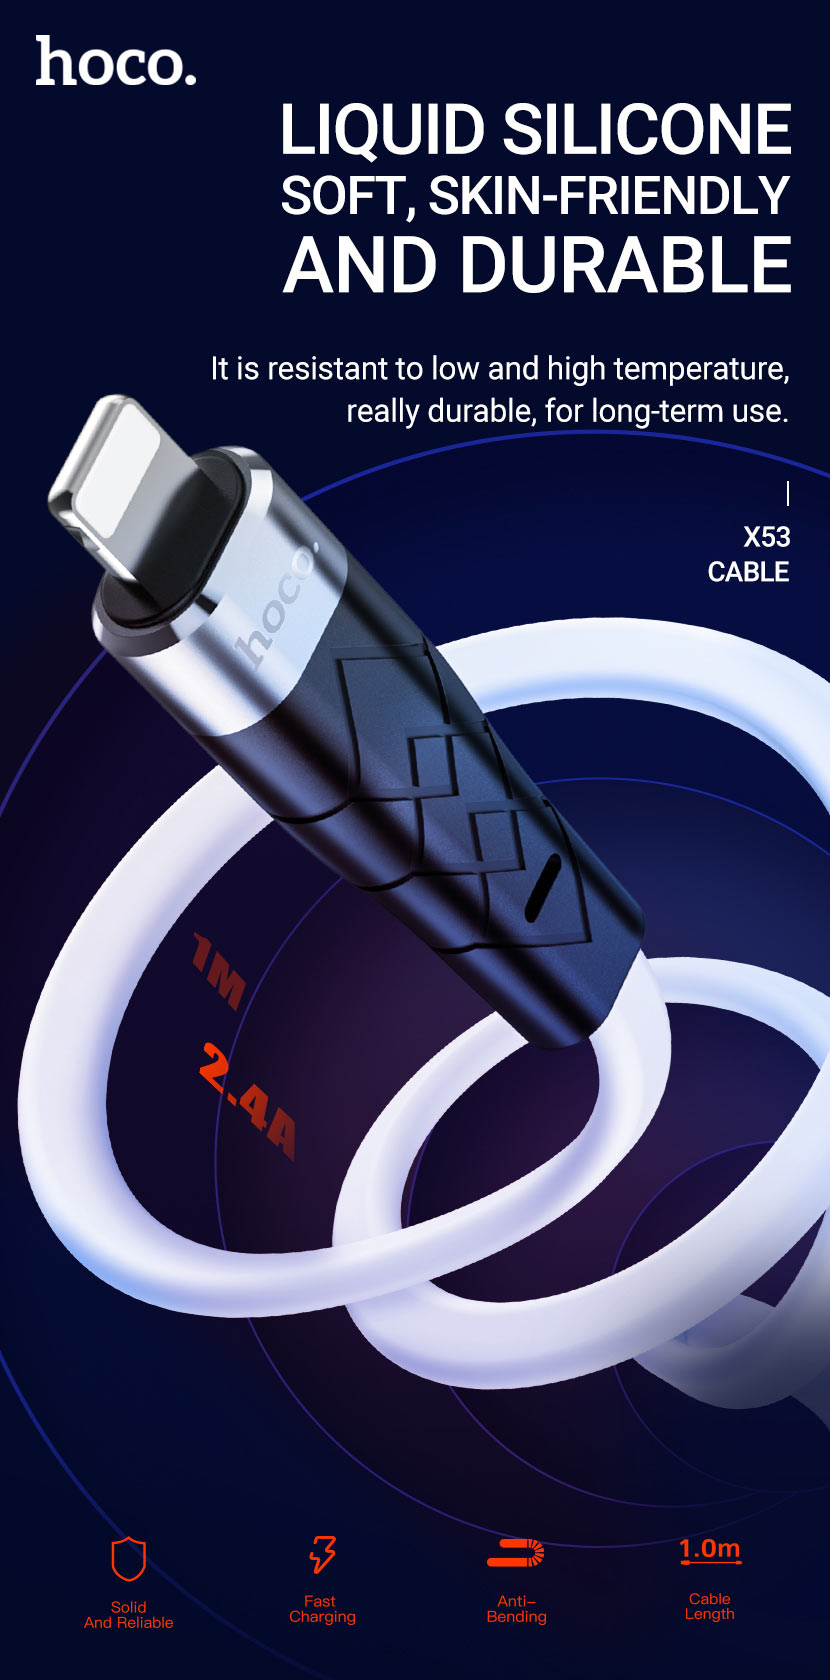 hoco news x53 angel silicone charging data cable en